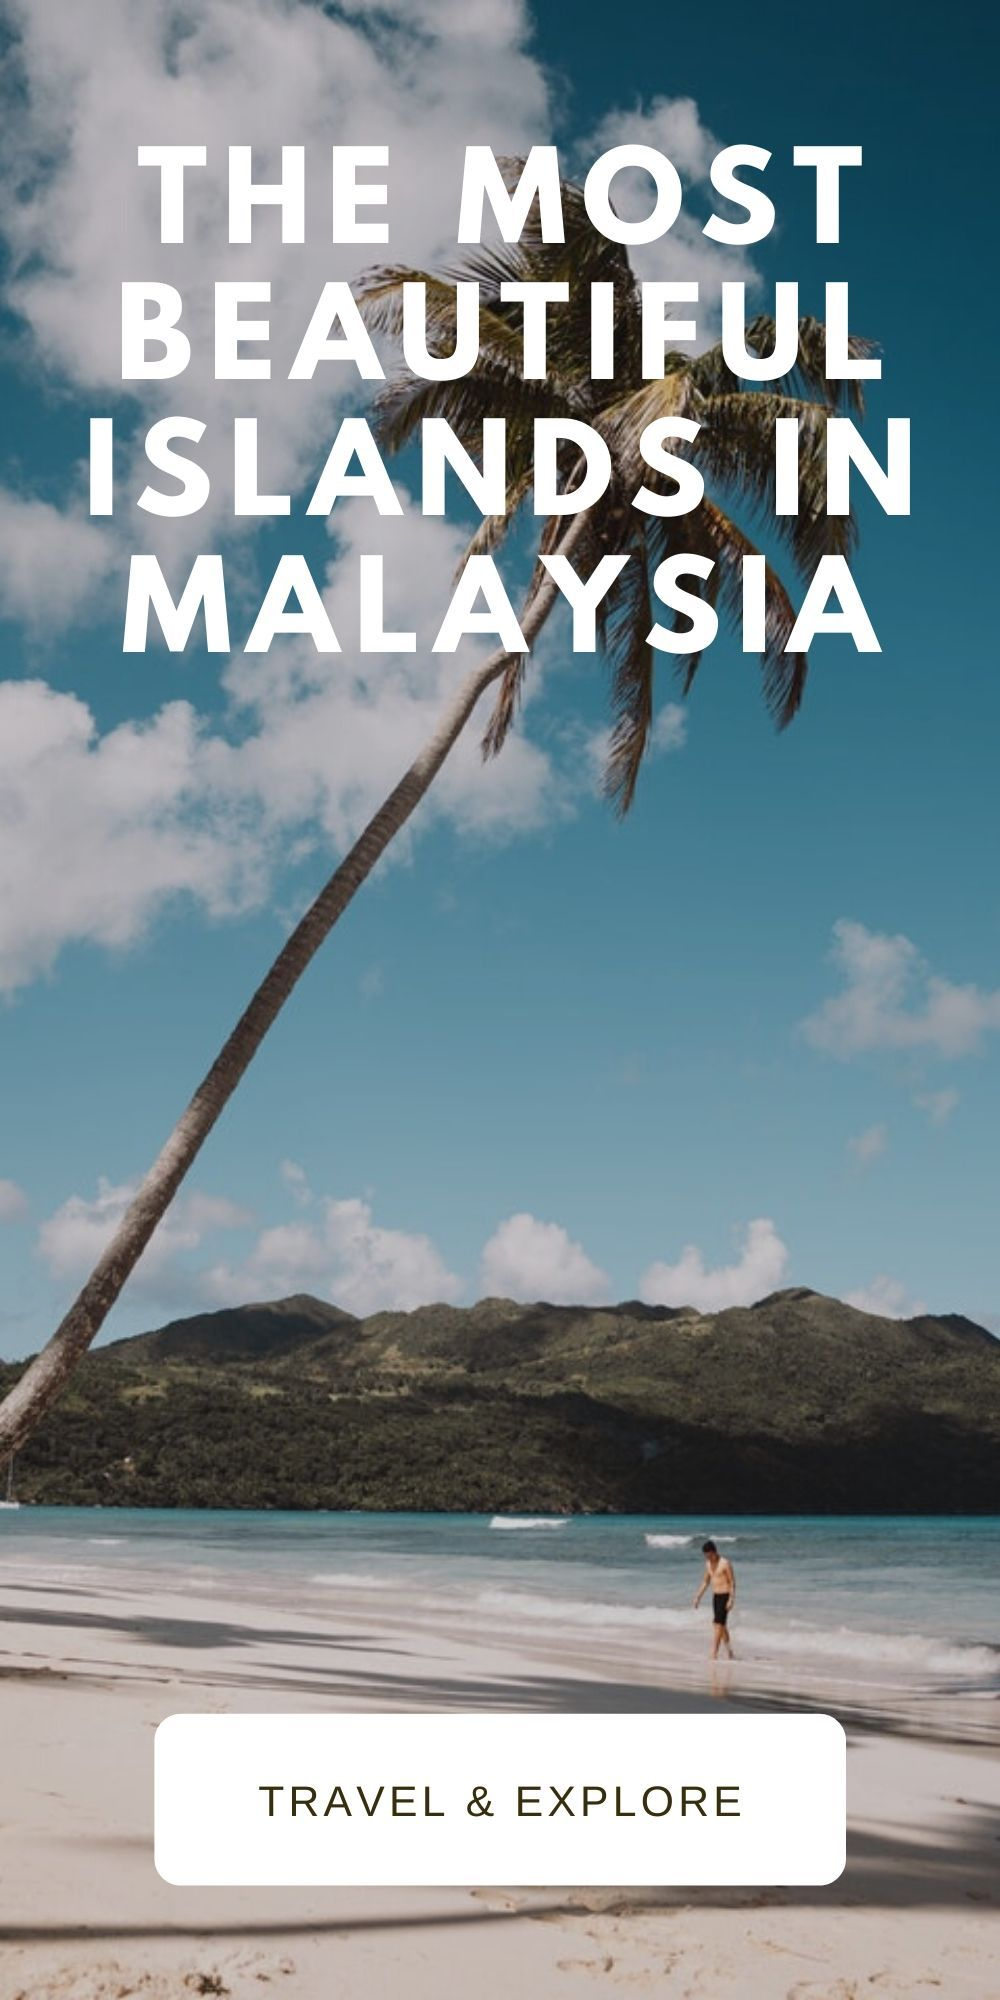 Malaysia is a country in the southeastern part of Asia